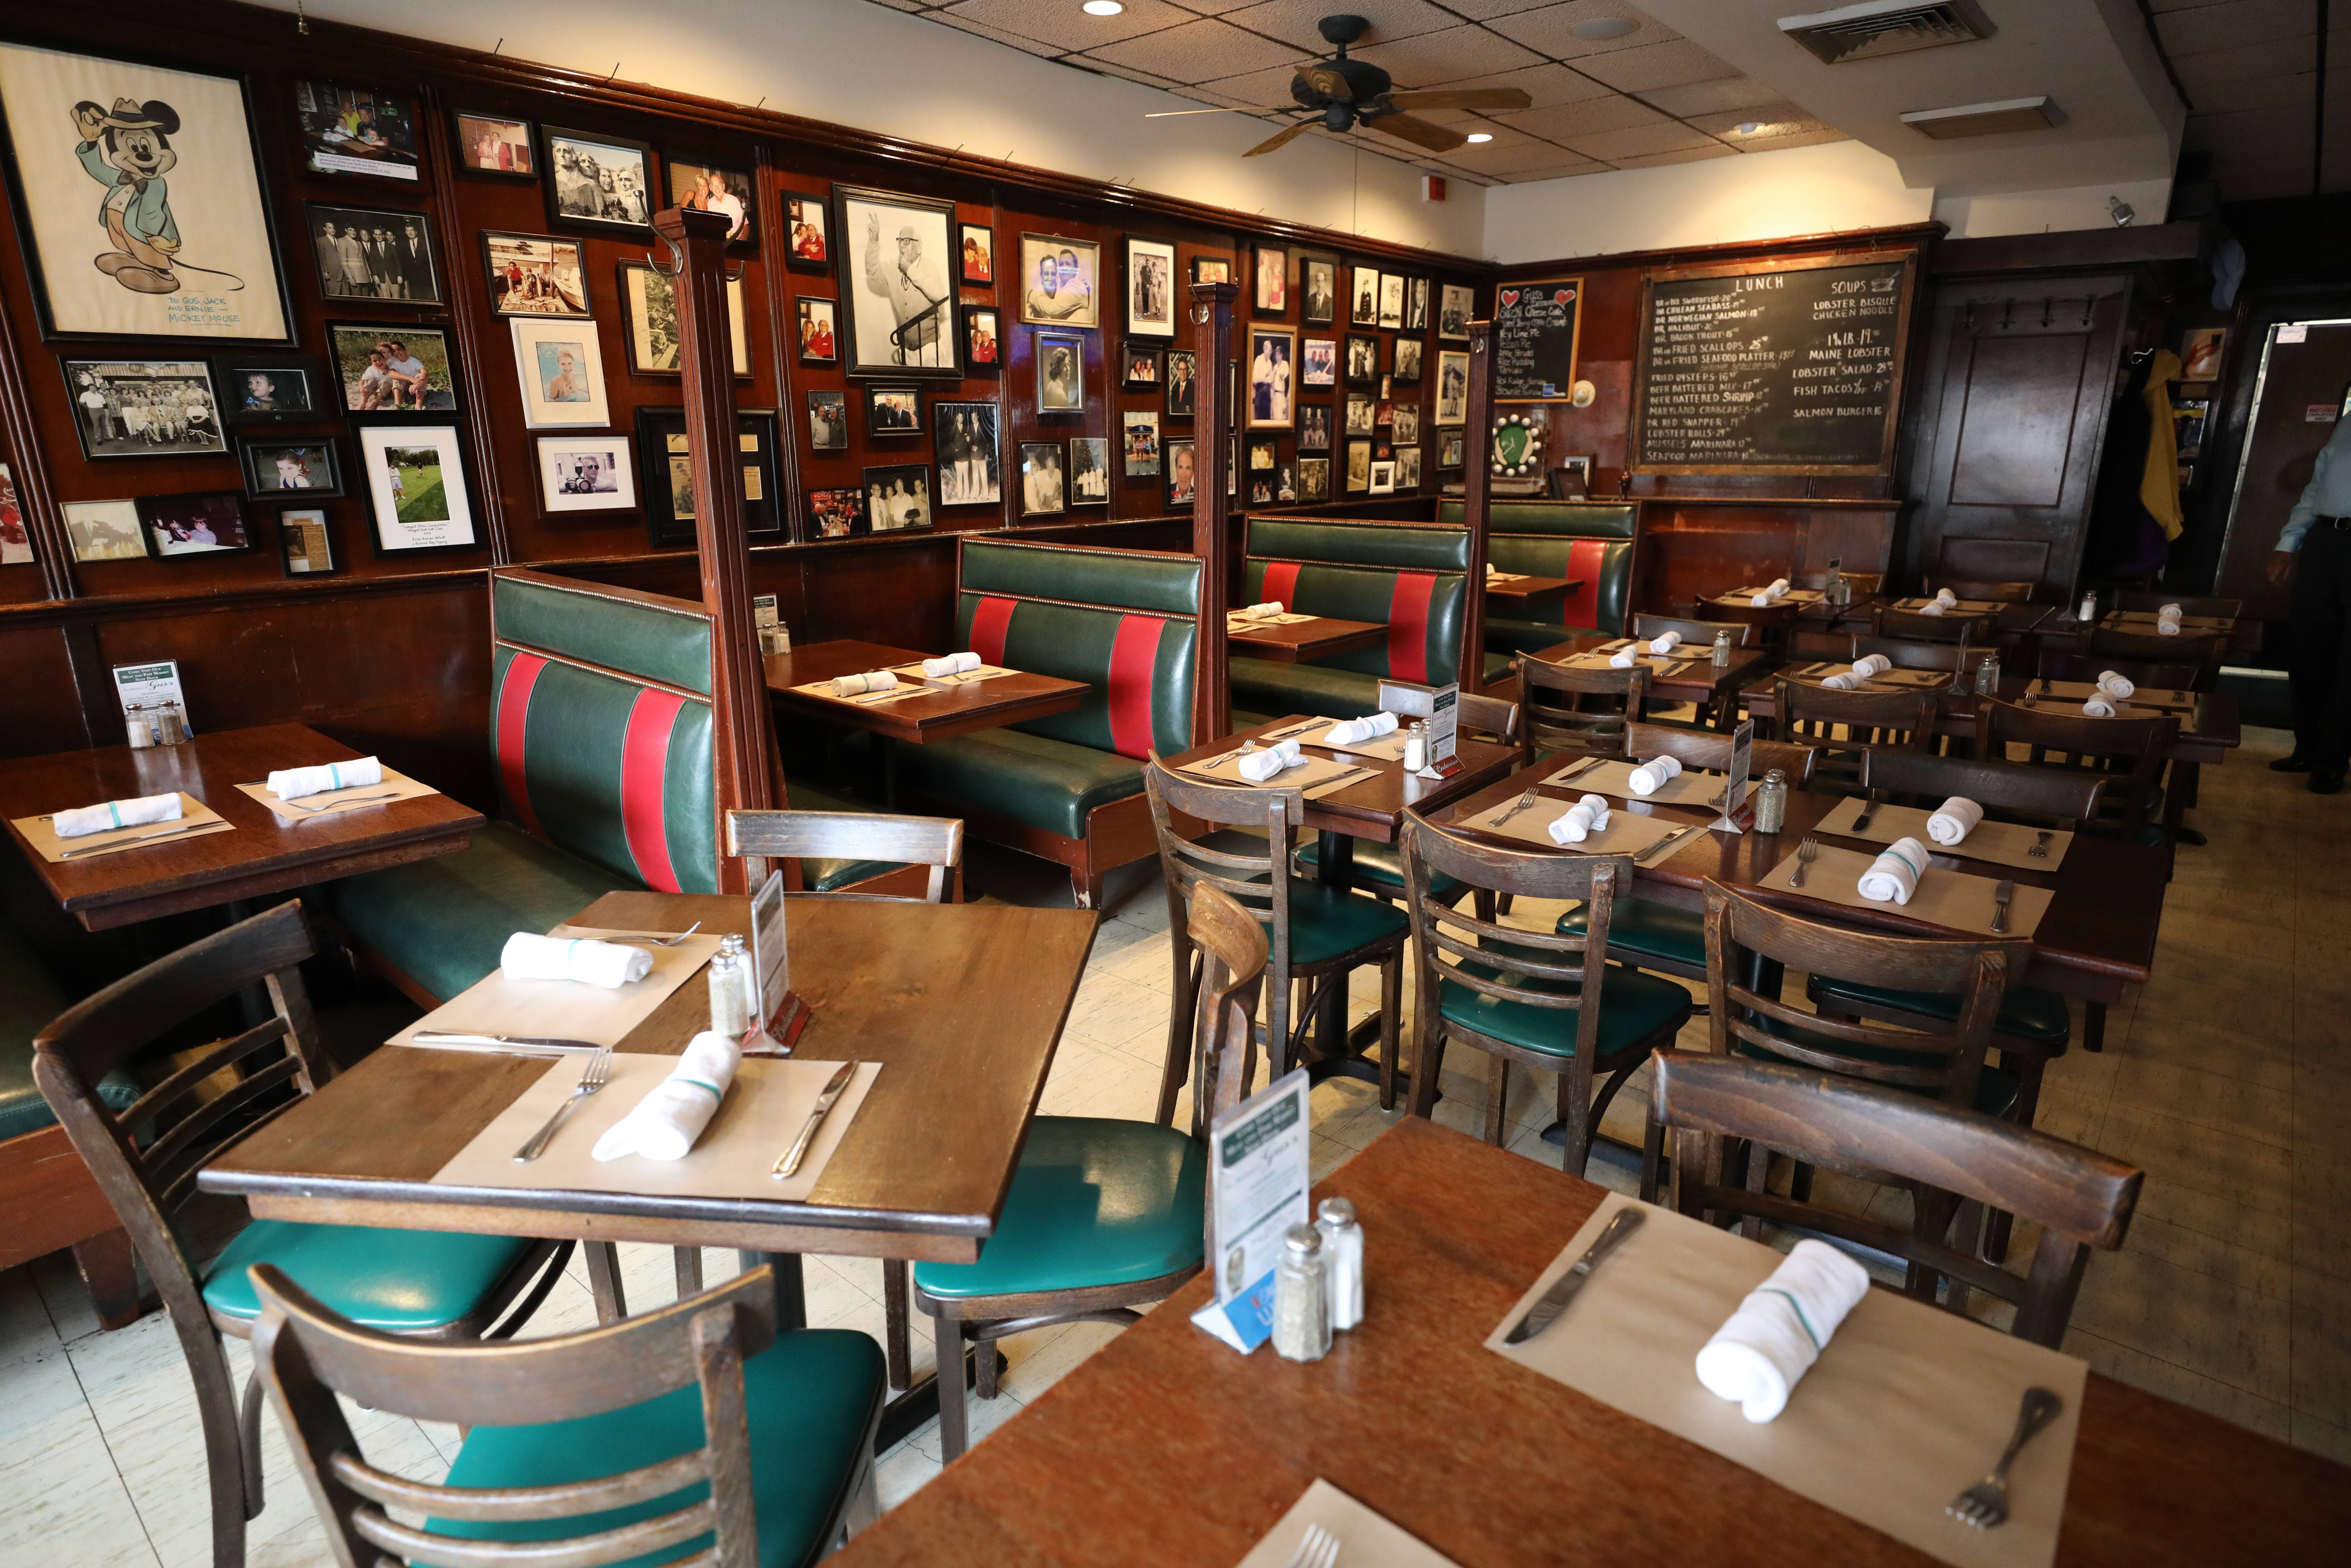 The dining room at Gus's Franklin Park Restaurant on Halstead Avenue in Harrison, pictured Oct. 9, 2018.